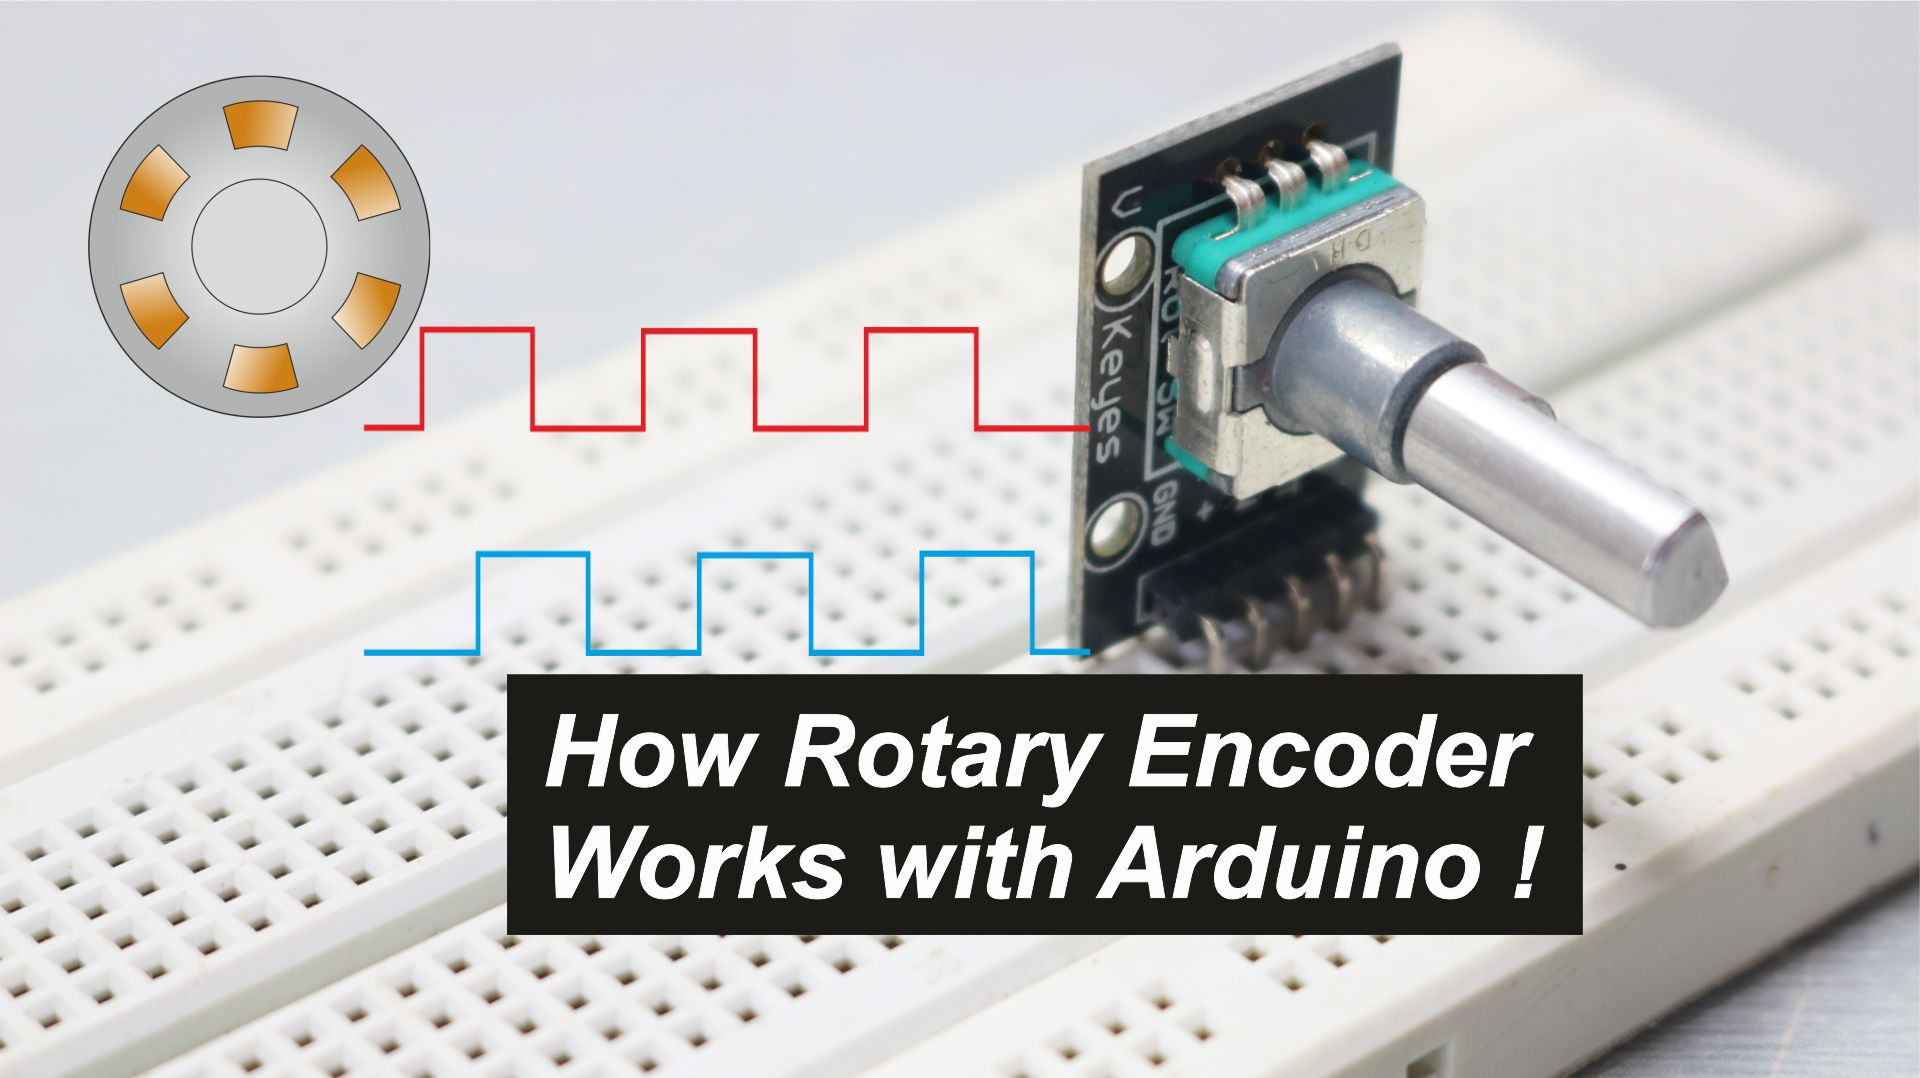 How Rotary Encoder Works With Arduino!: 6 Steps (with Pictures)